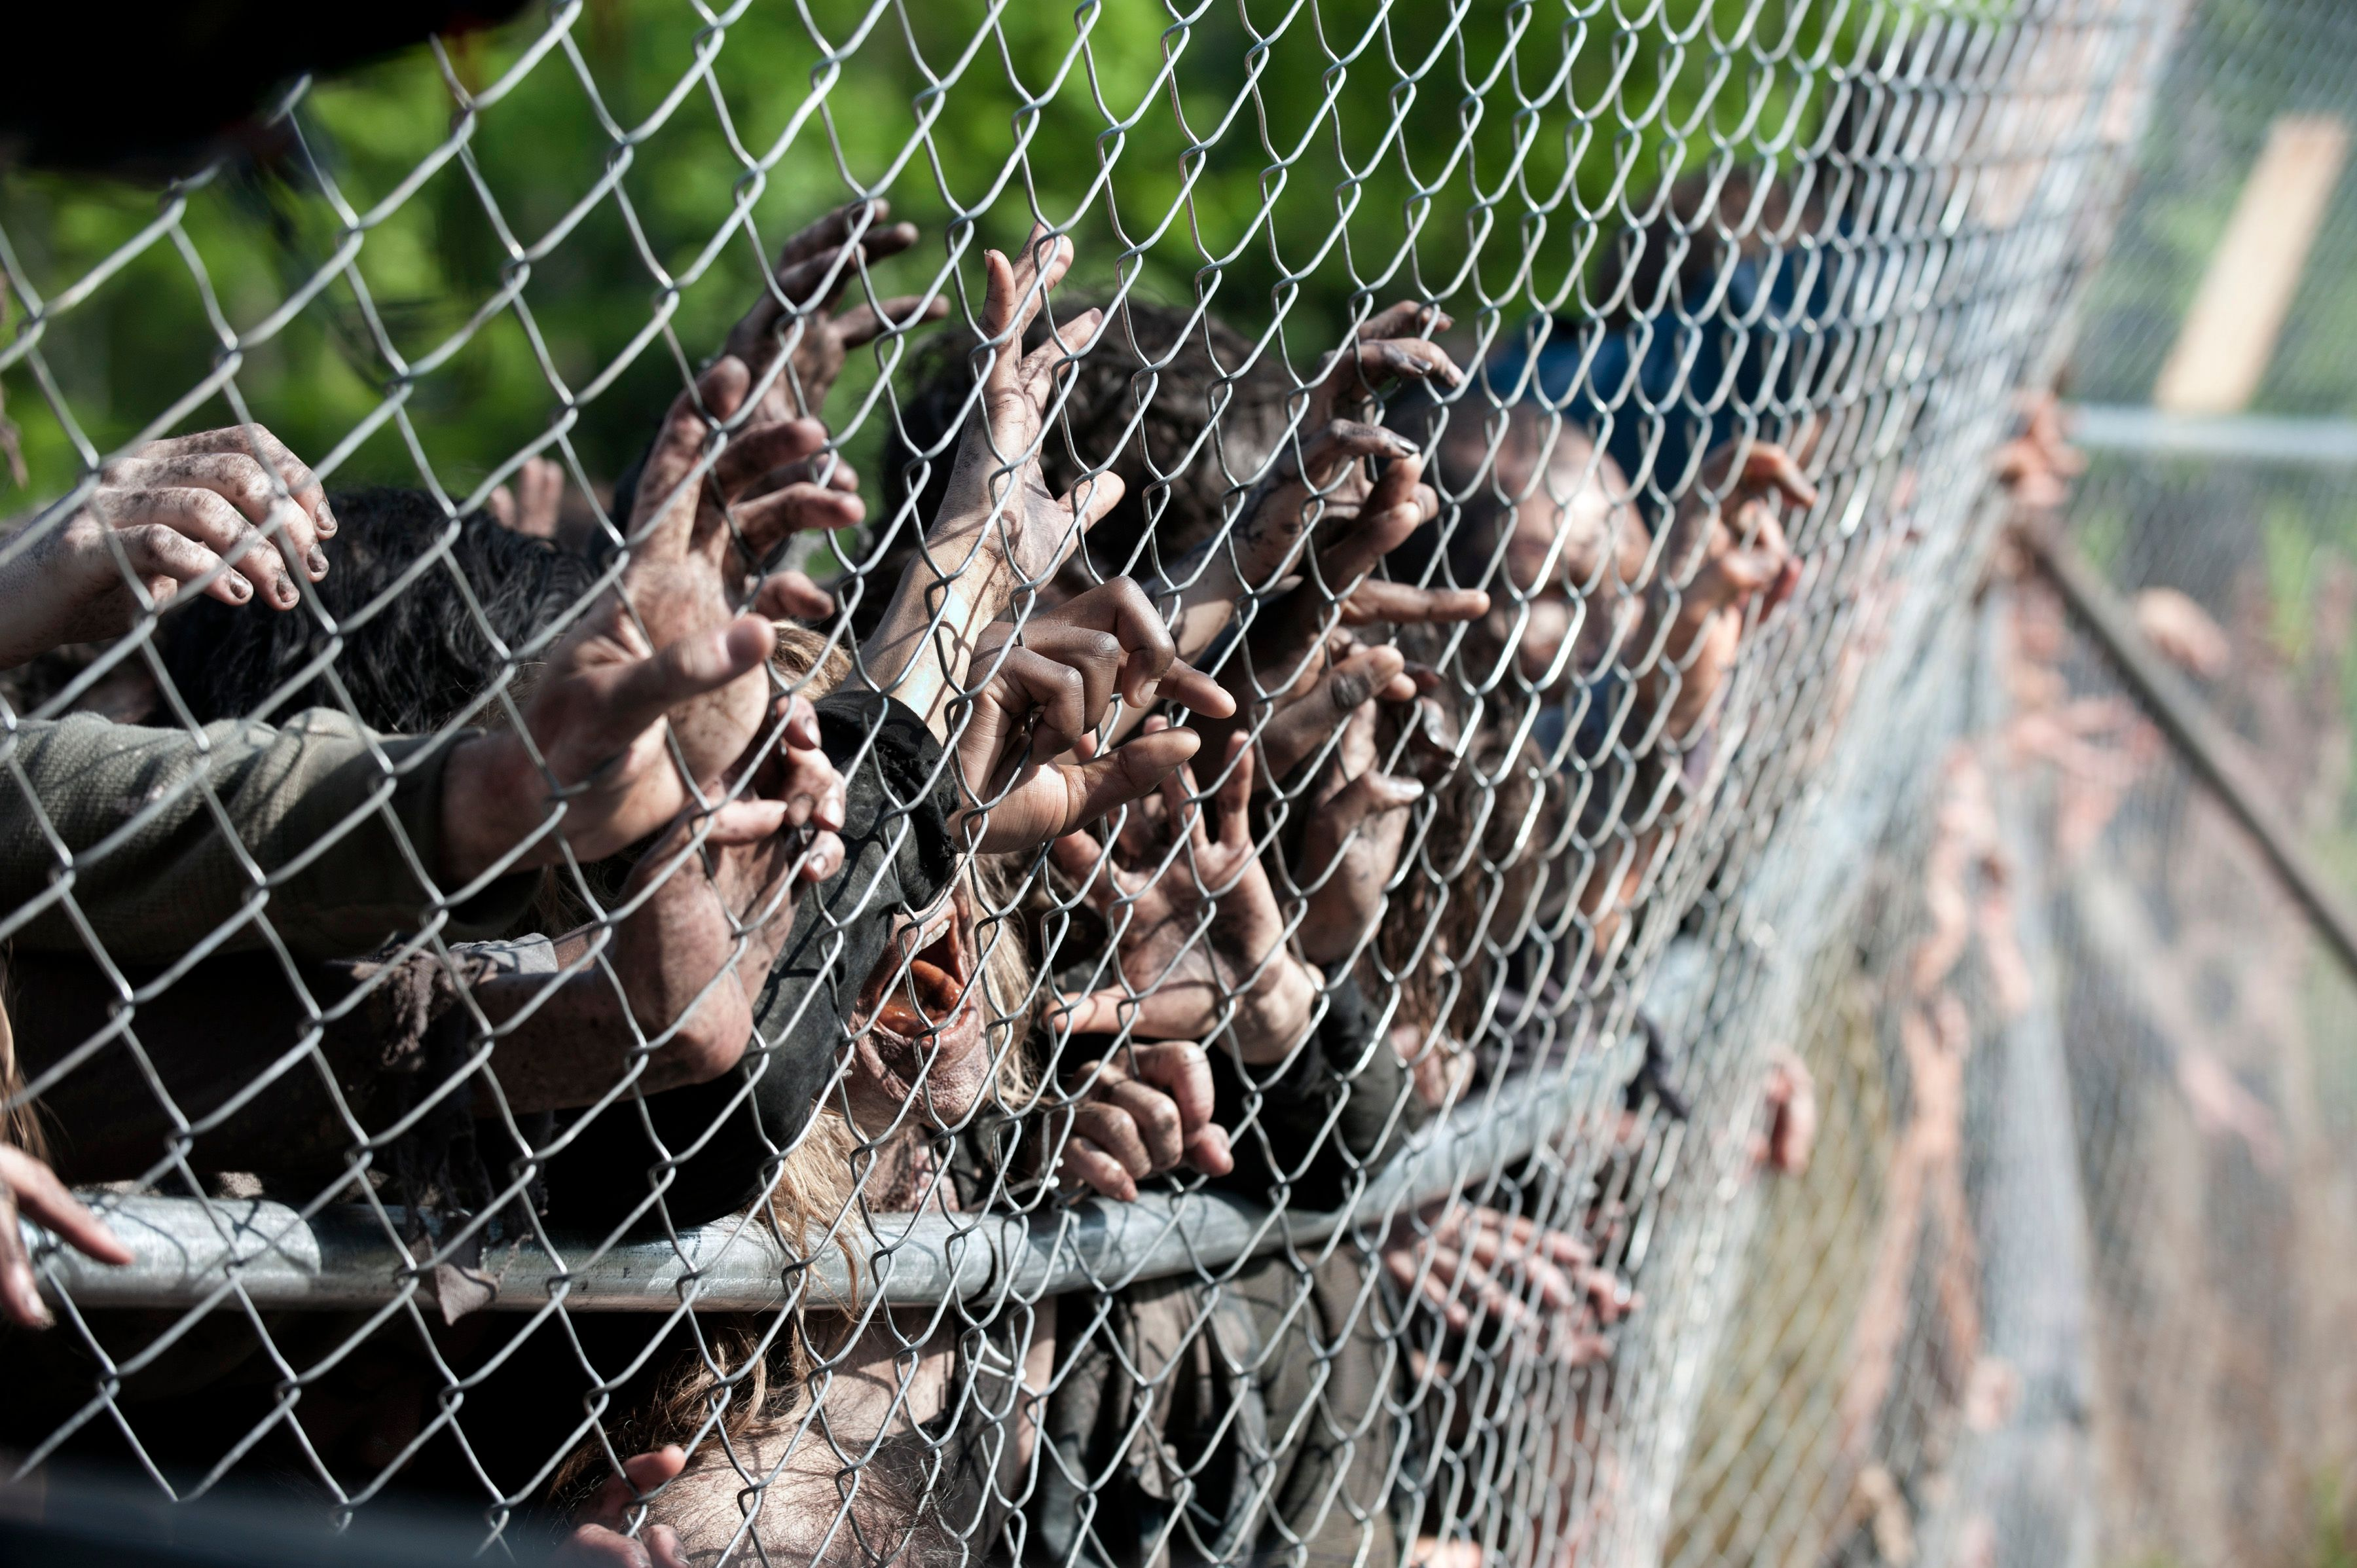 THE WALKING DEAD Season 4 Images | Collider